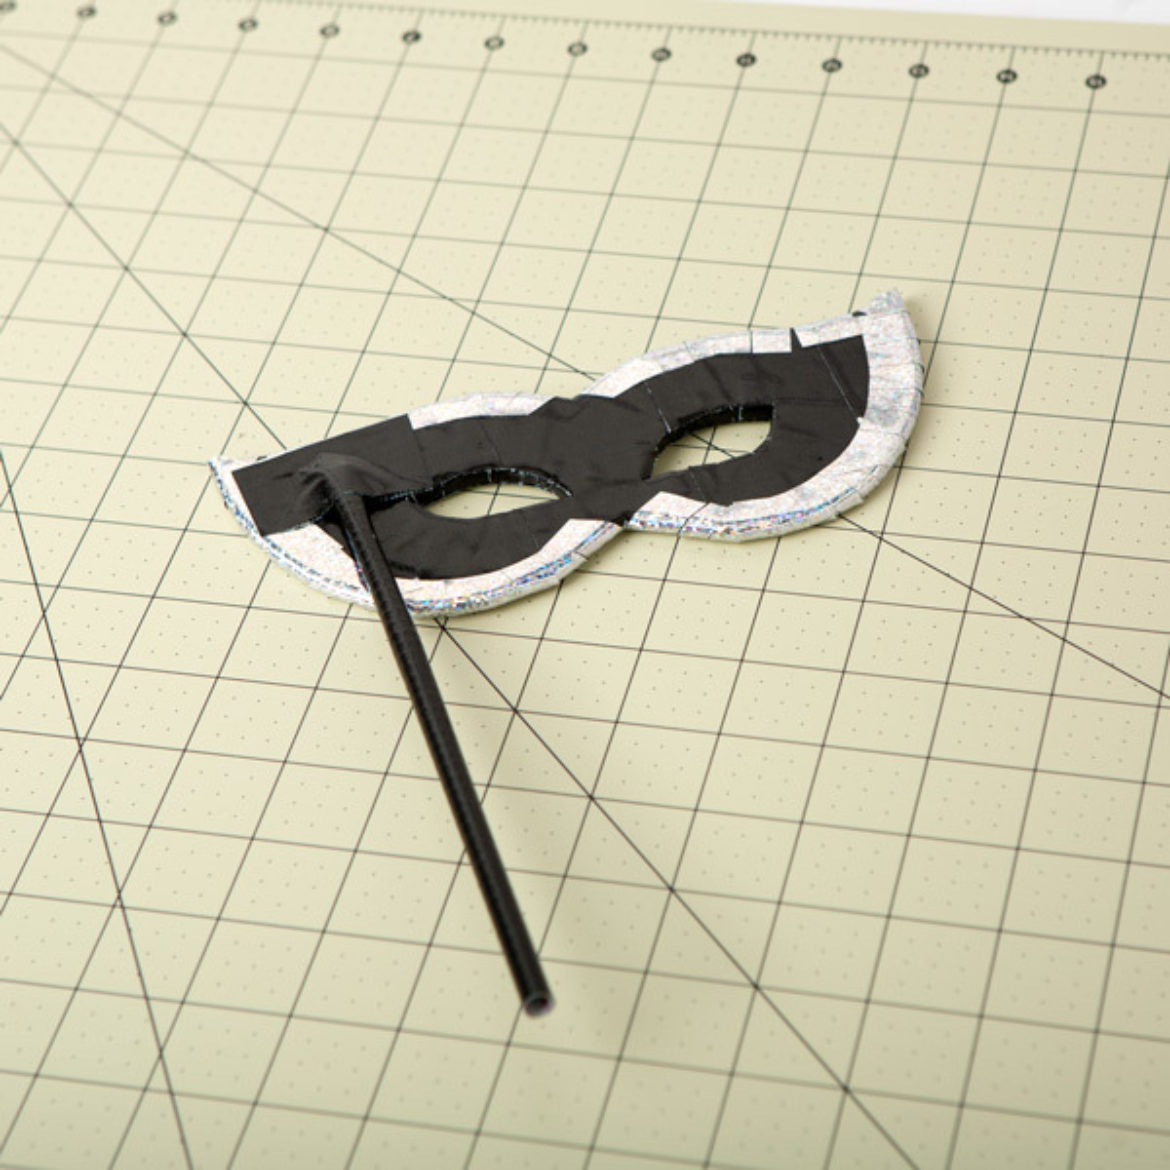 Straw from previous step attached to the back of the mask to serve as a handle